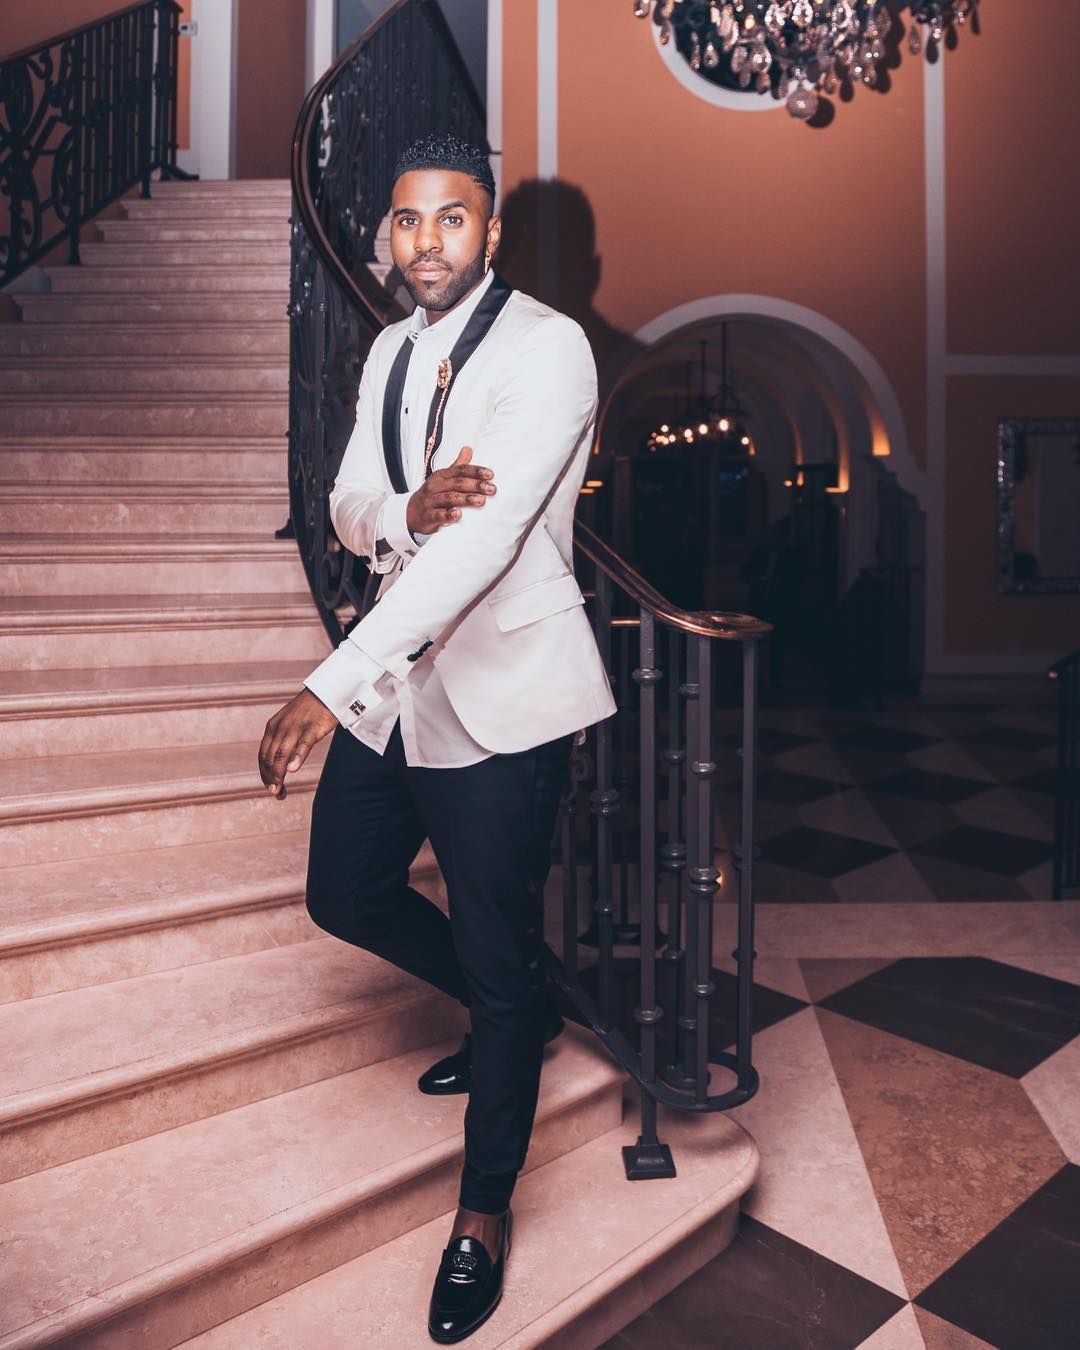 """, Jason Derulo on Instagram: """"New chapters are meant to be nerve wrecking. Acting has always been an underserved passion in my life, probably because of nerves and…"""", My Pop Star Kda Blog, My Pop Star Kda Blog"""